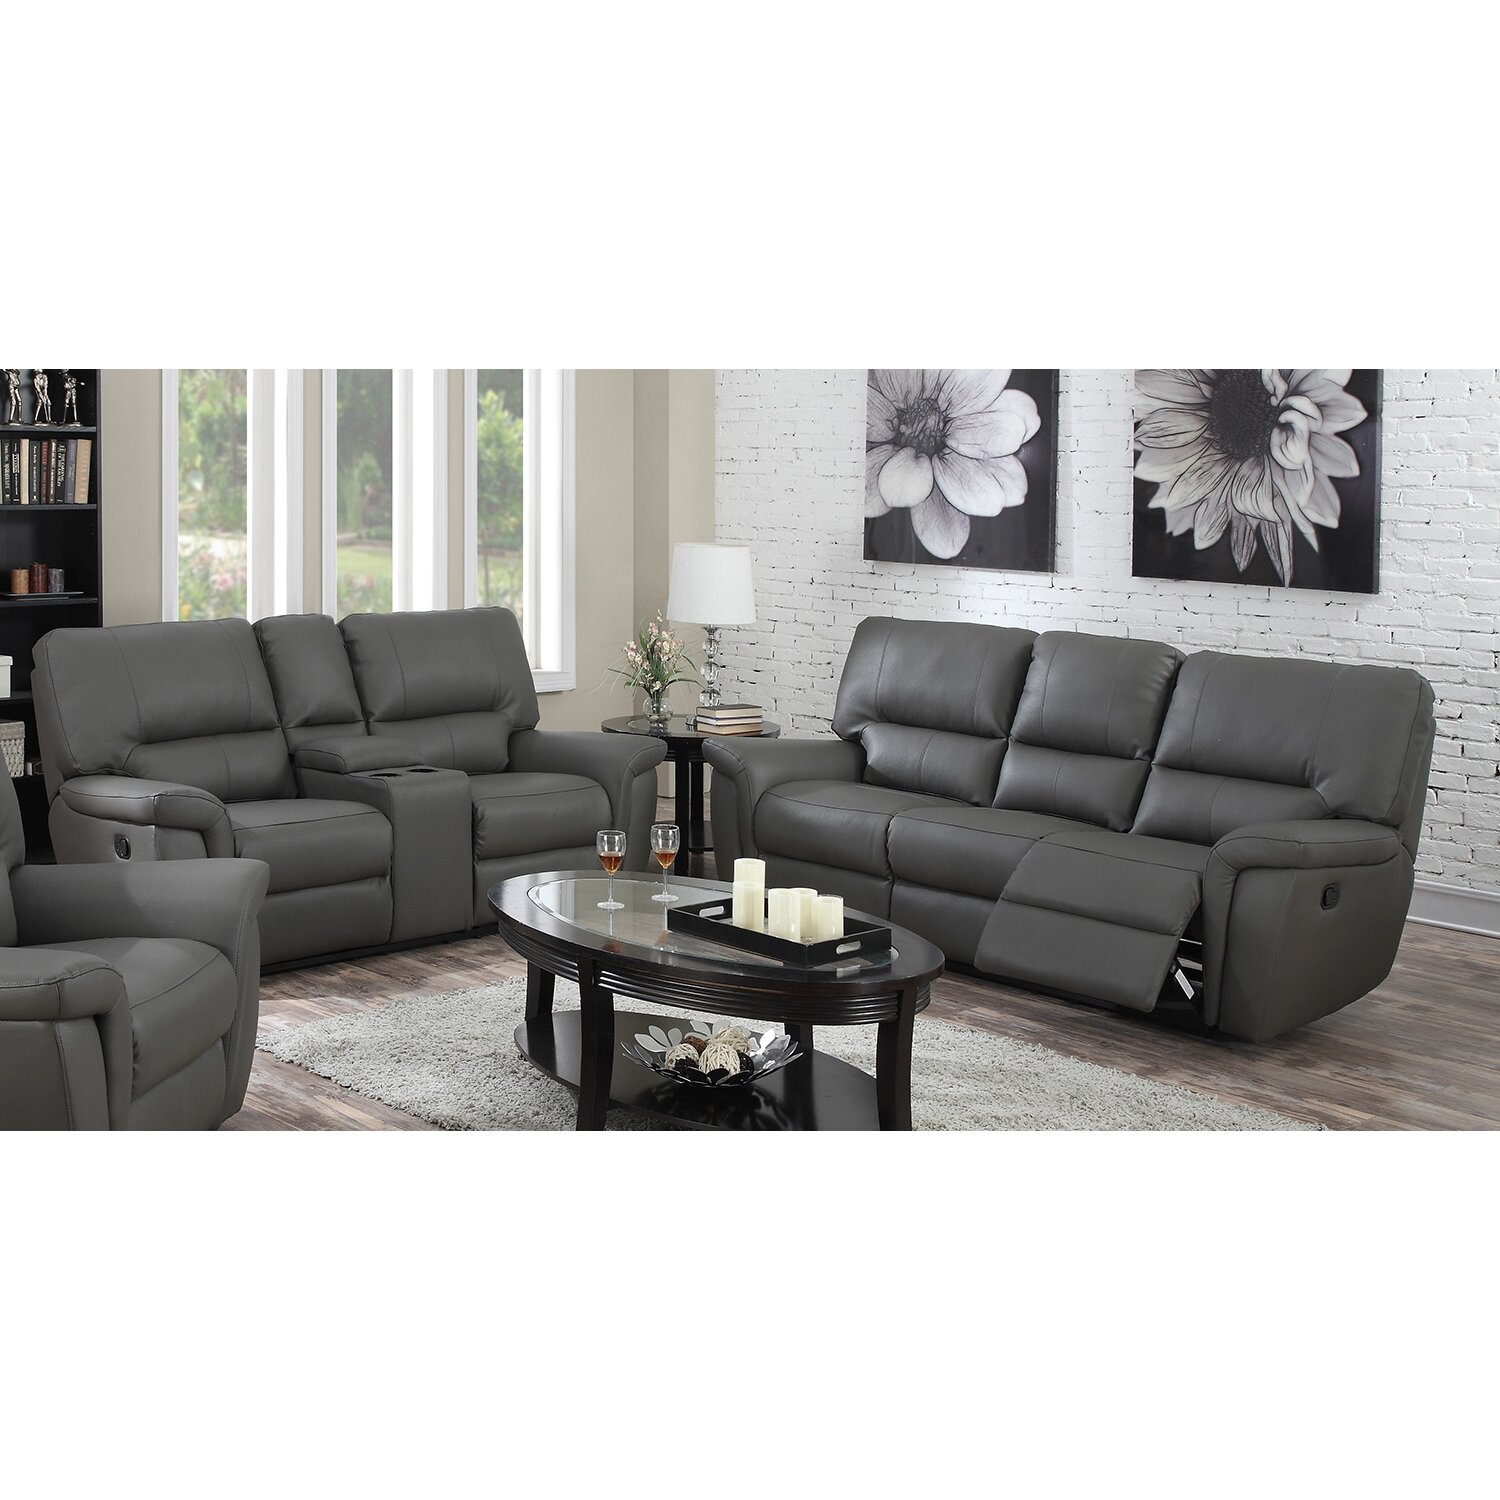 Coja Harris Recliner Sofa And Loveseat Set Wayfair